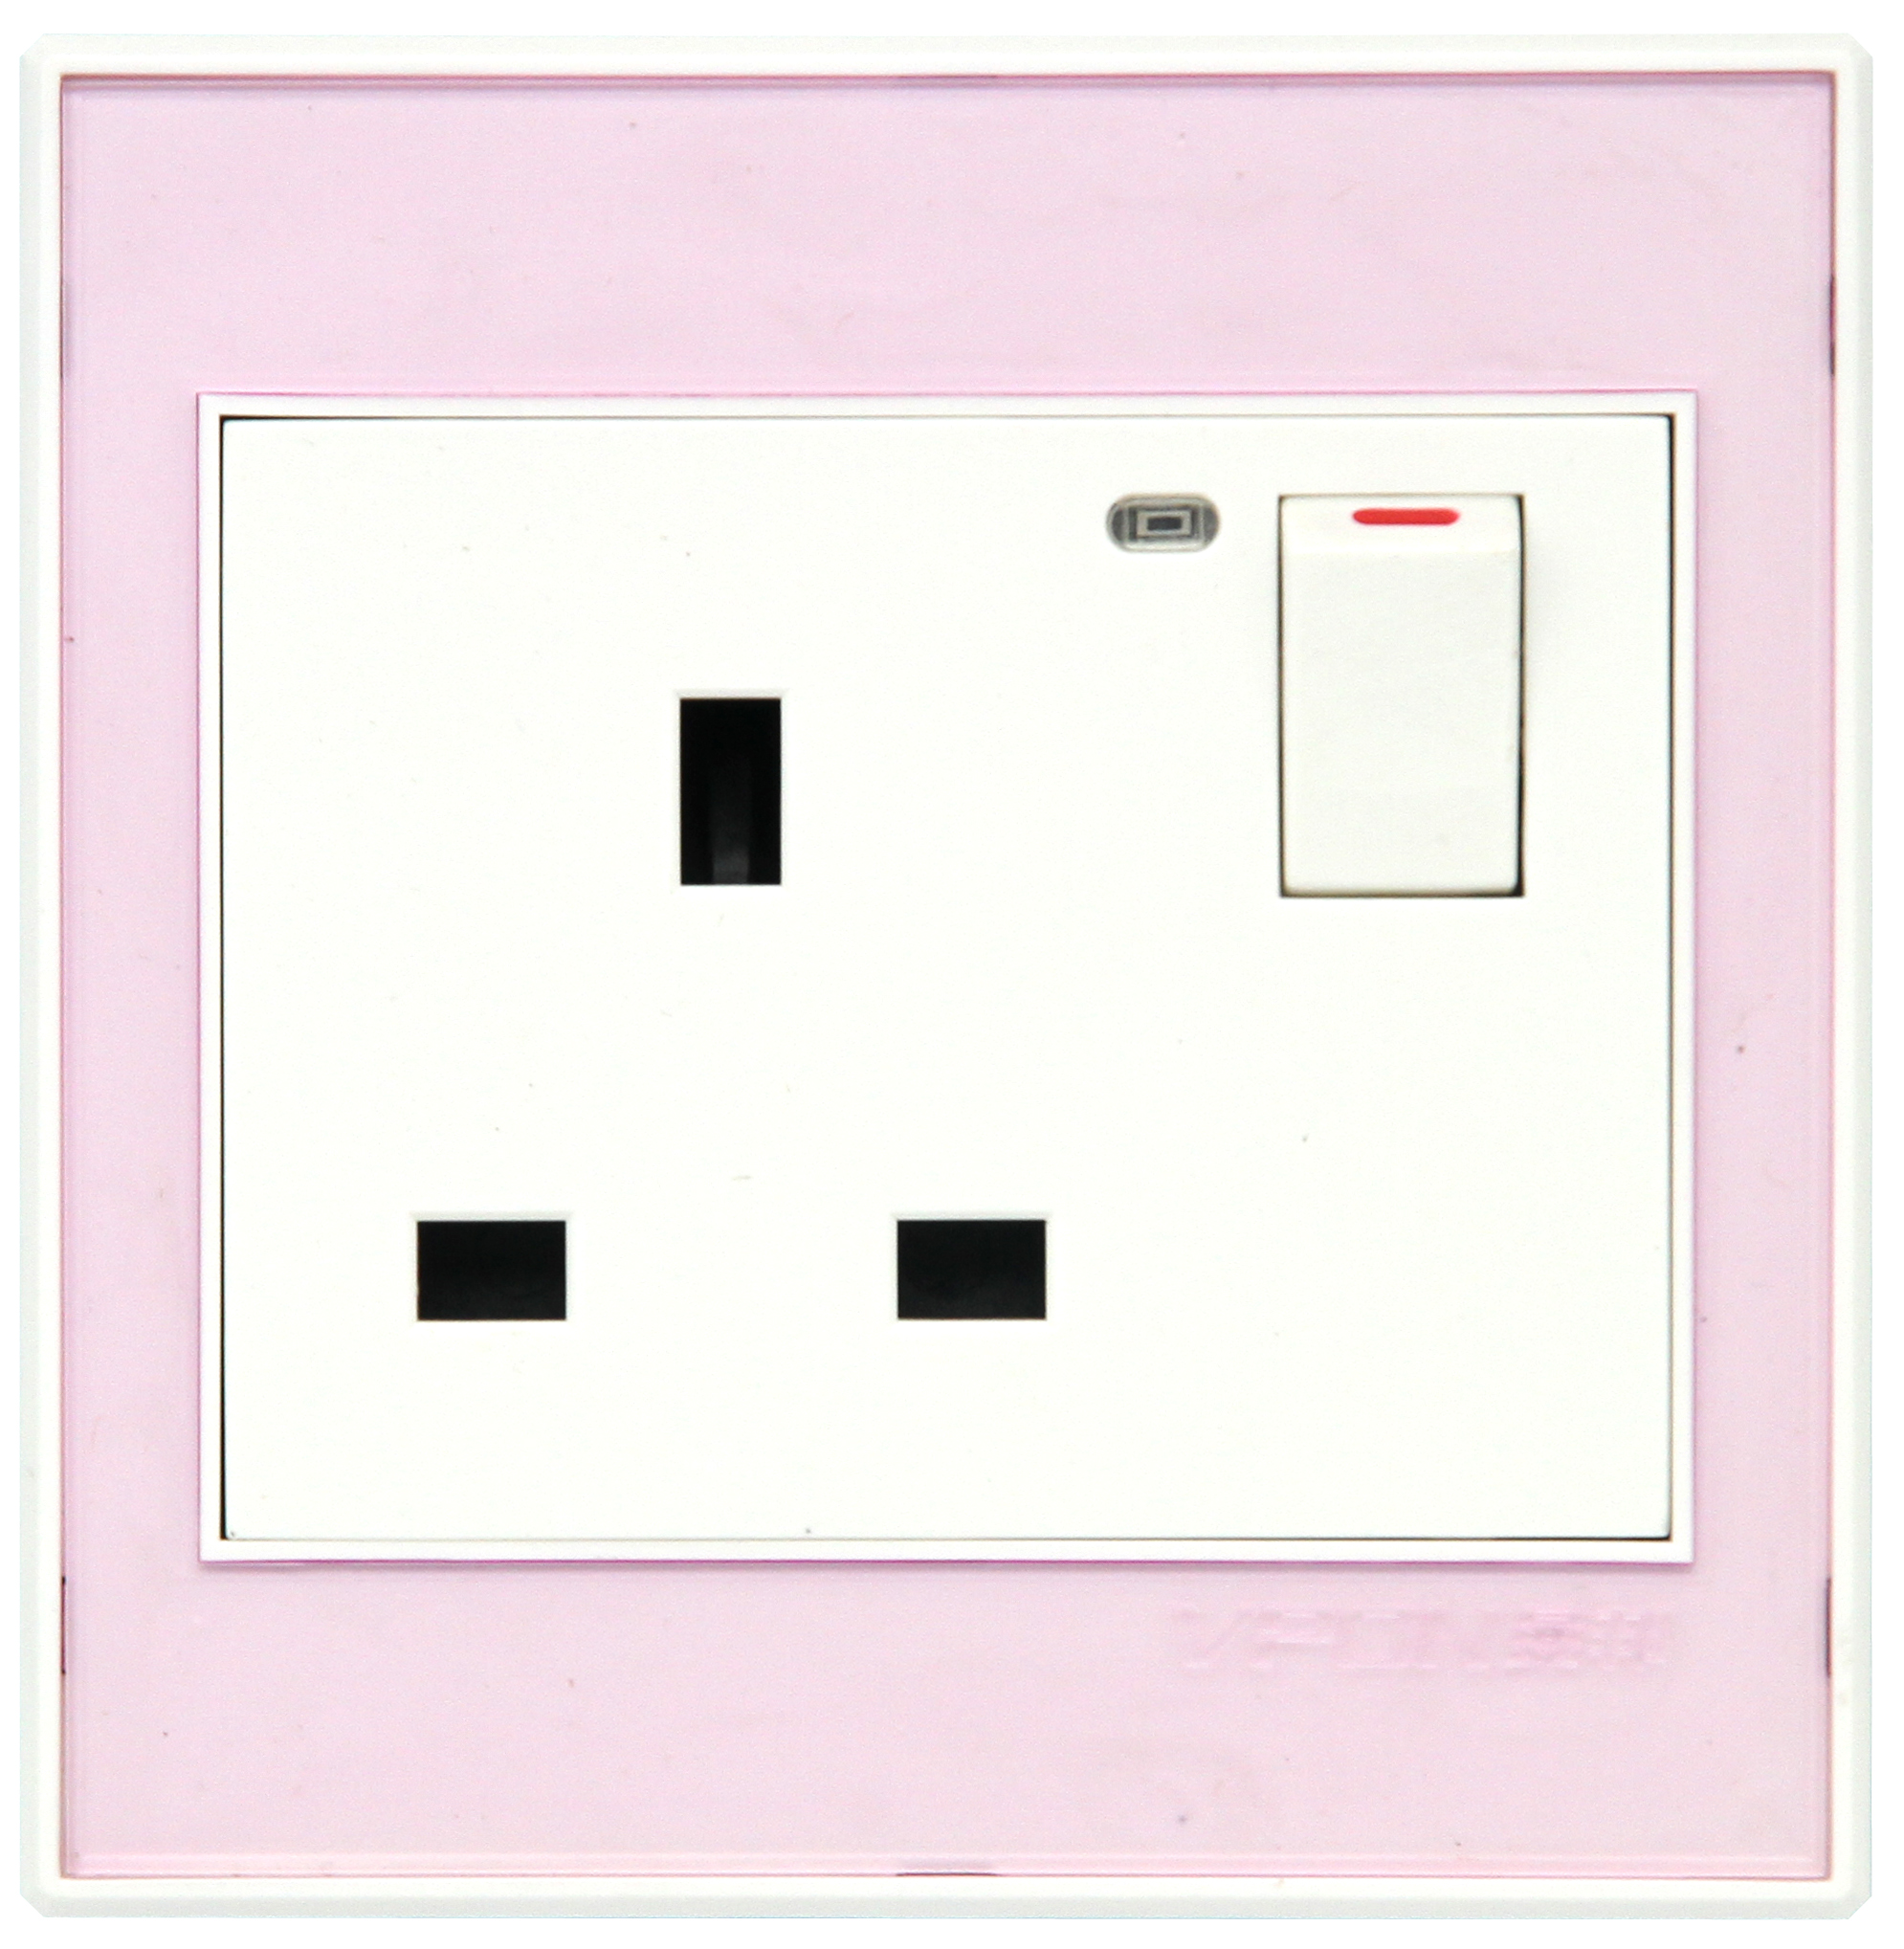 13A switch and socket with light